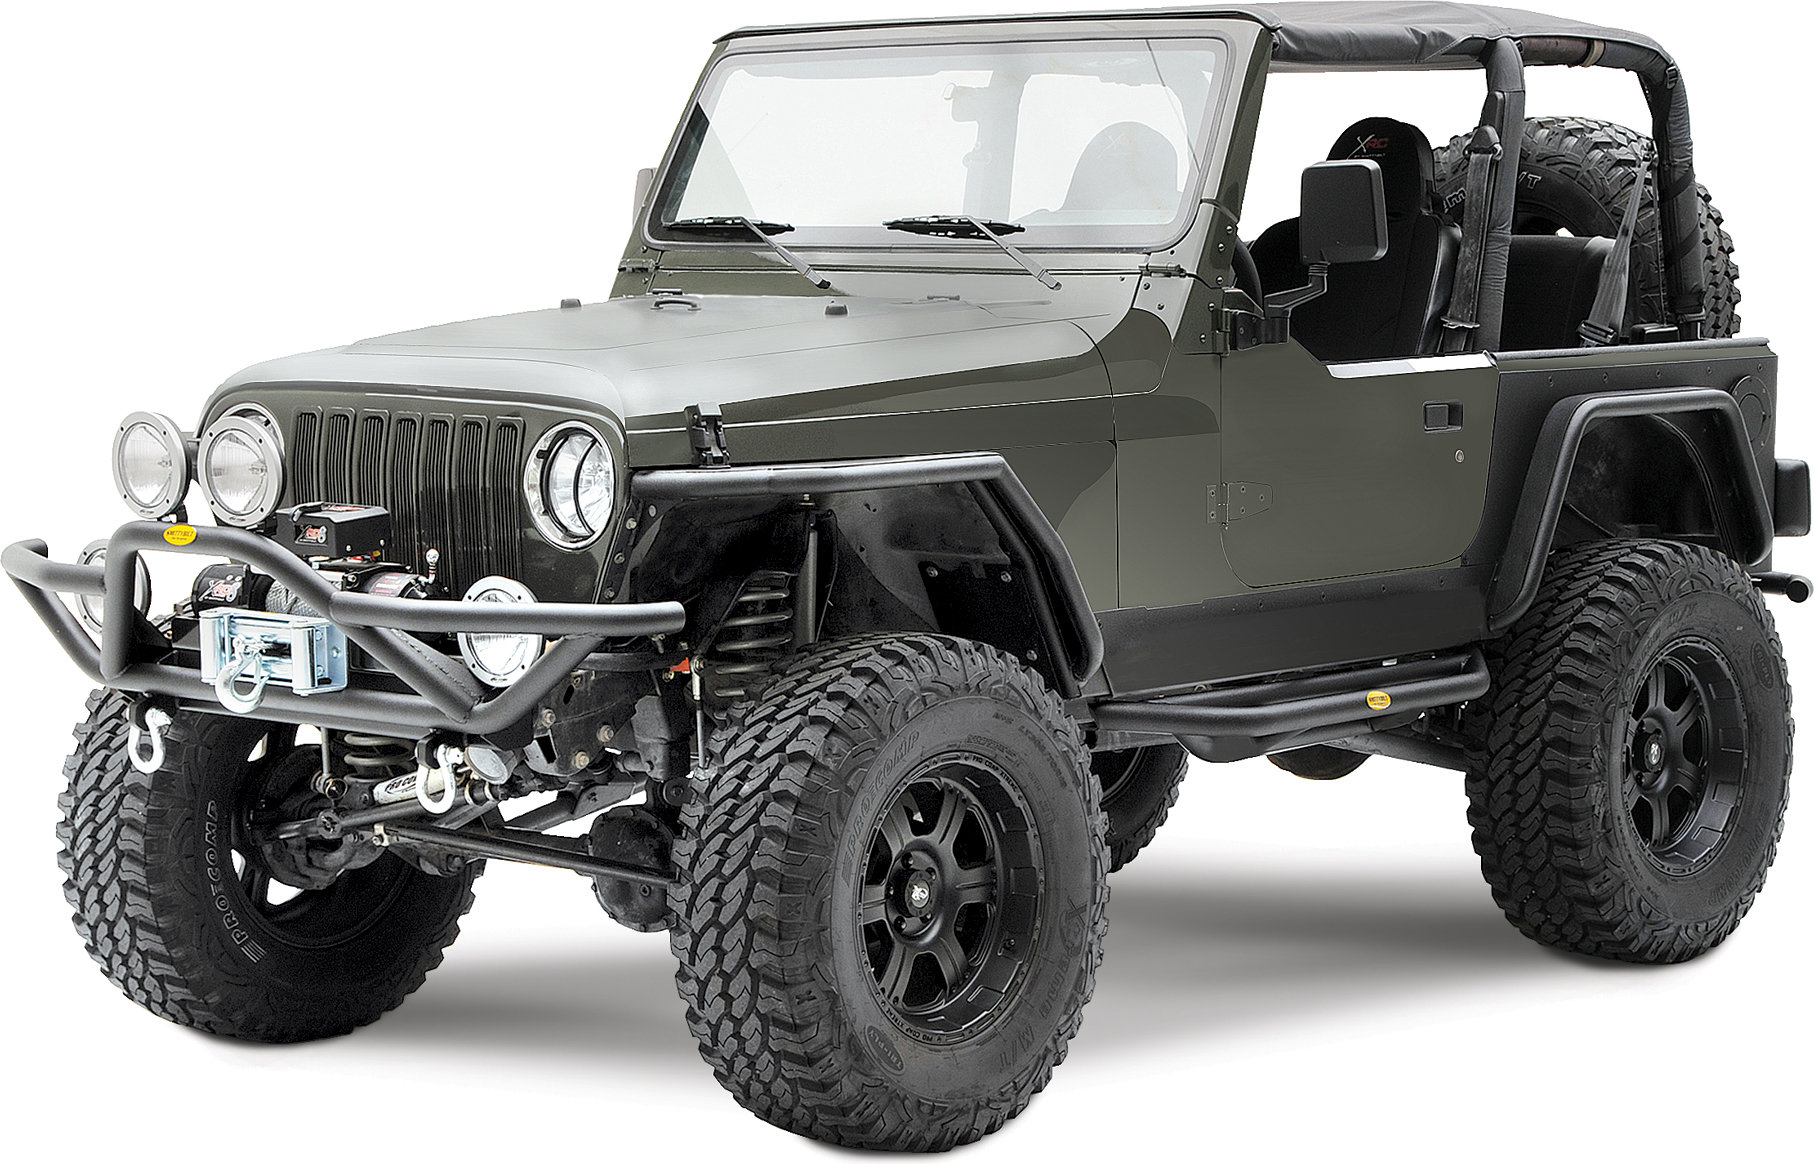 2007 jeep wrangler parts diagram fight or flight response smittybilt 76721 front src bumper in textured black for 87-06 jeep® yj, tj & unlimited ...